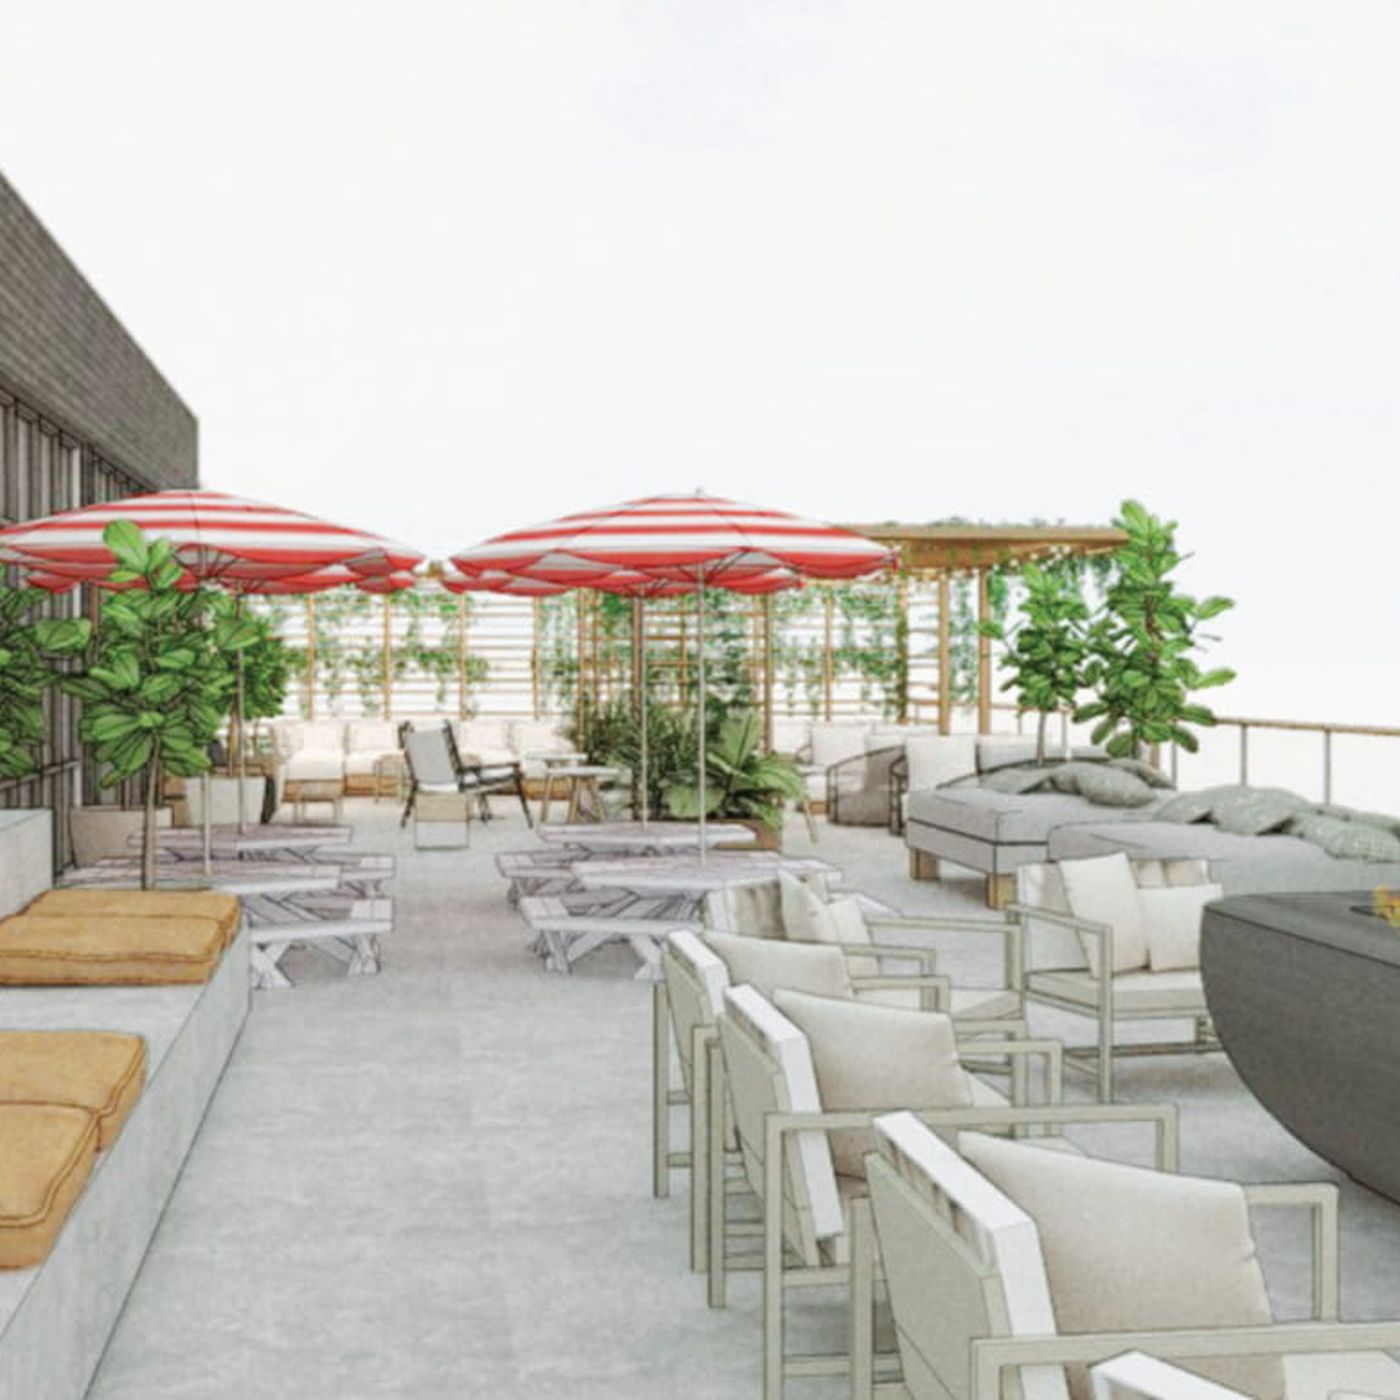 Bold Video 2017 Hotel east nashville gets its first rooftop bar this summer, at